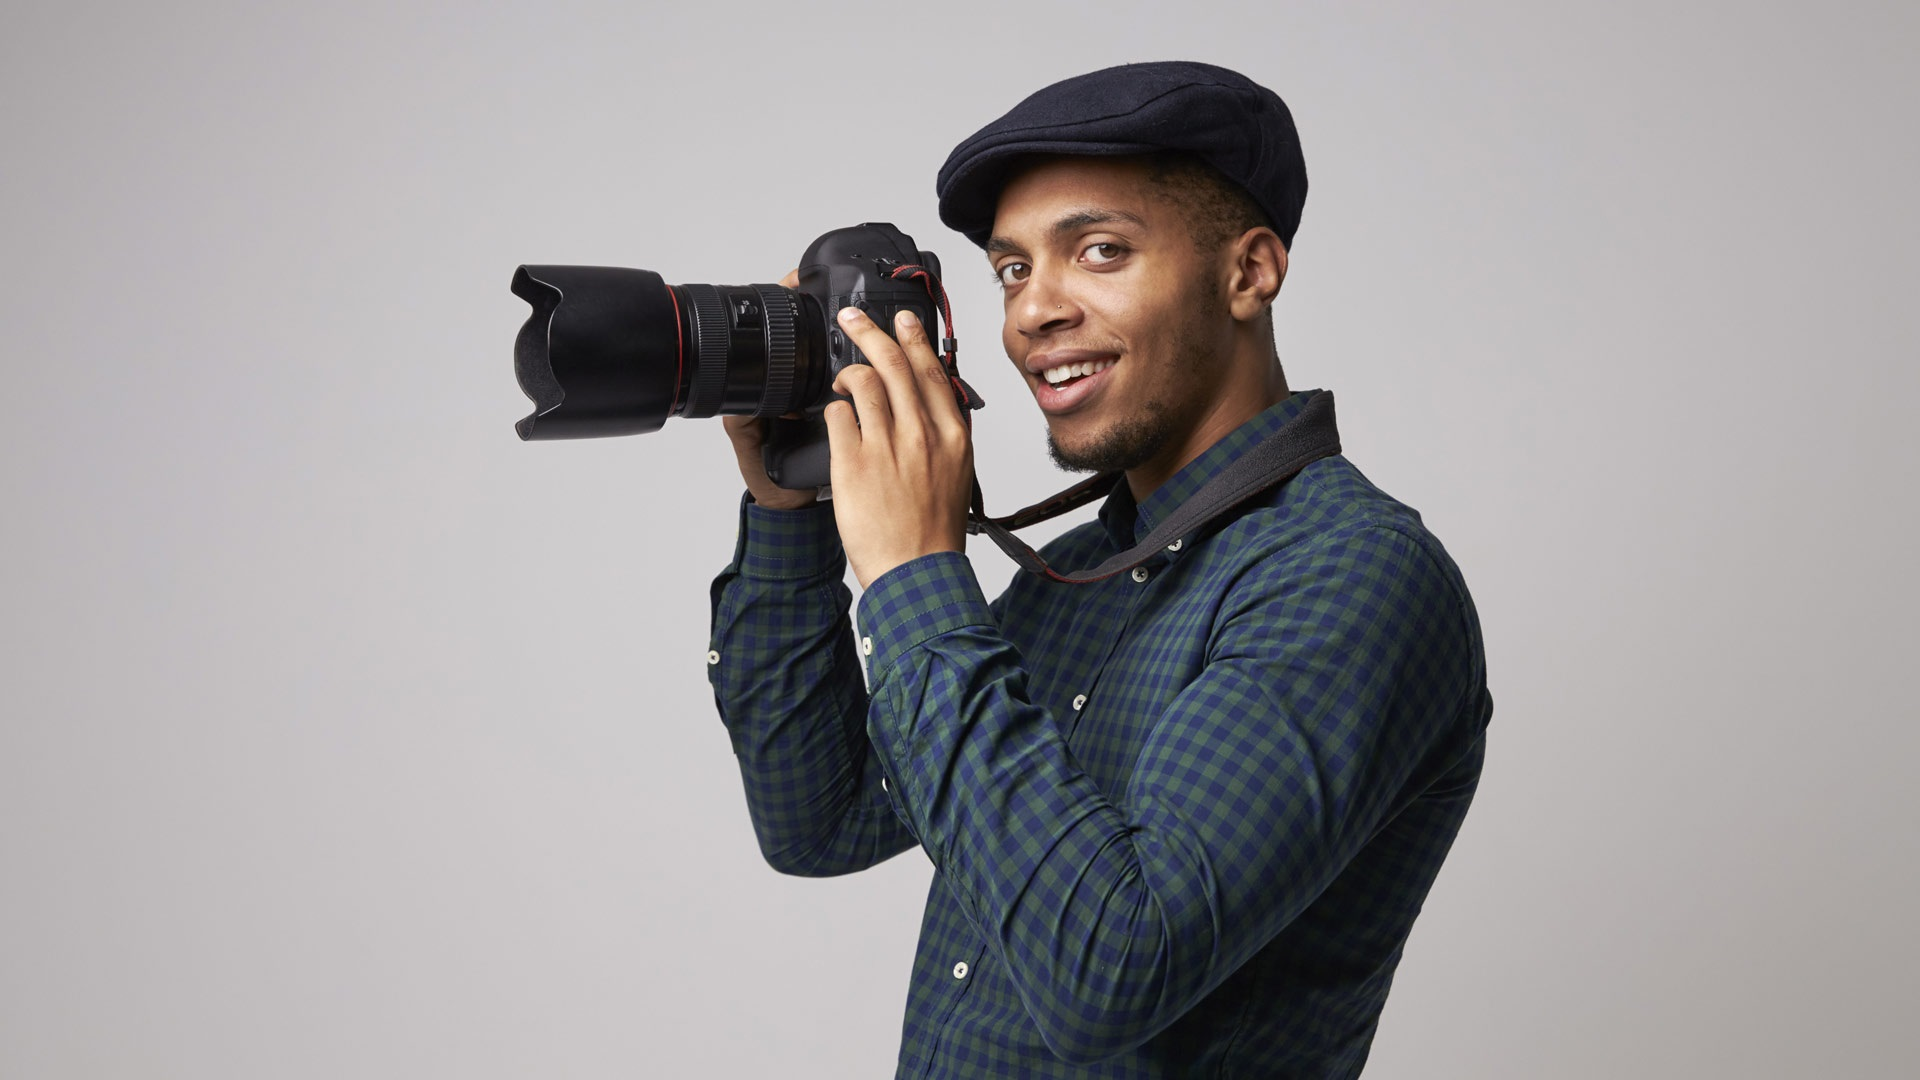 Picture perfect : Pre-requisites of a professional photographer